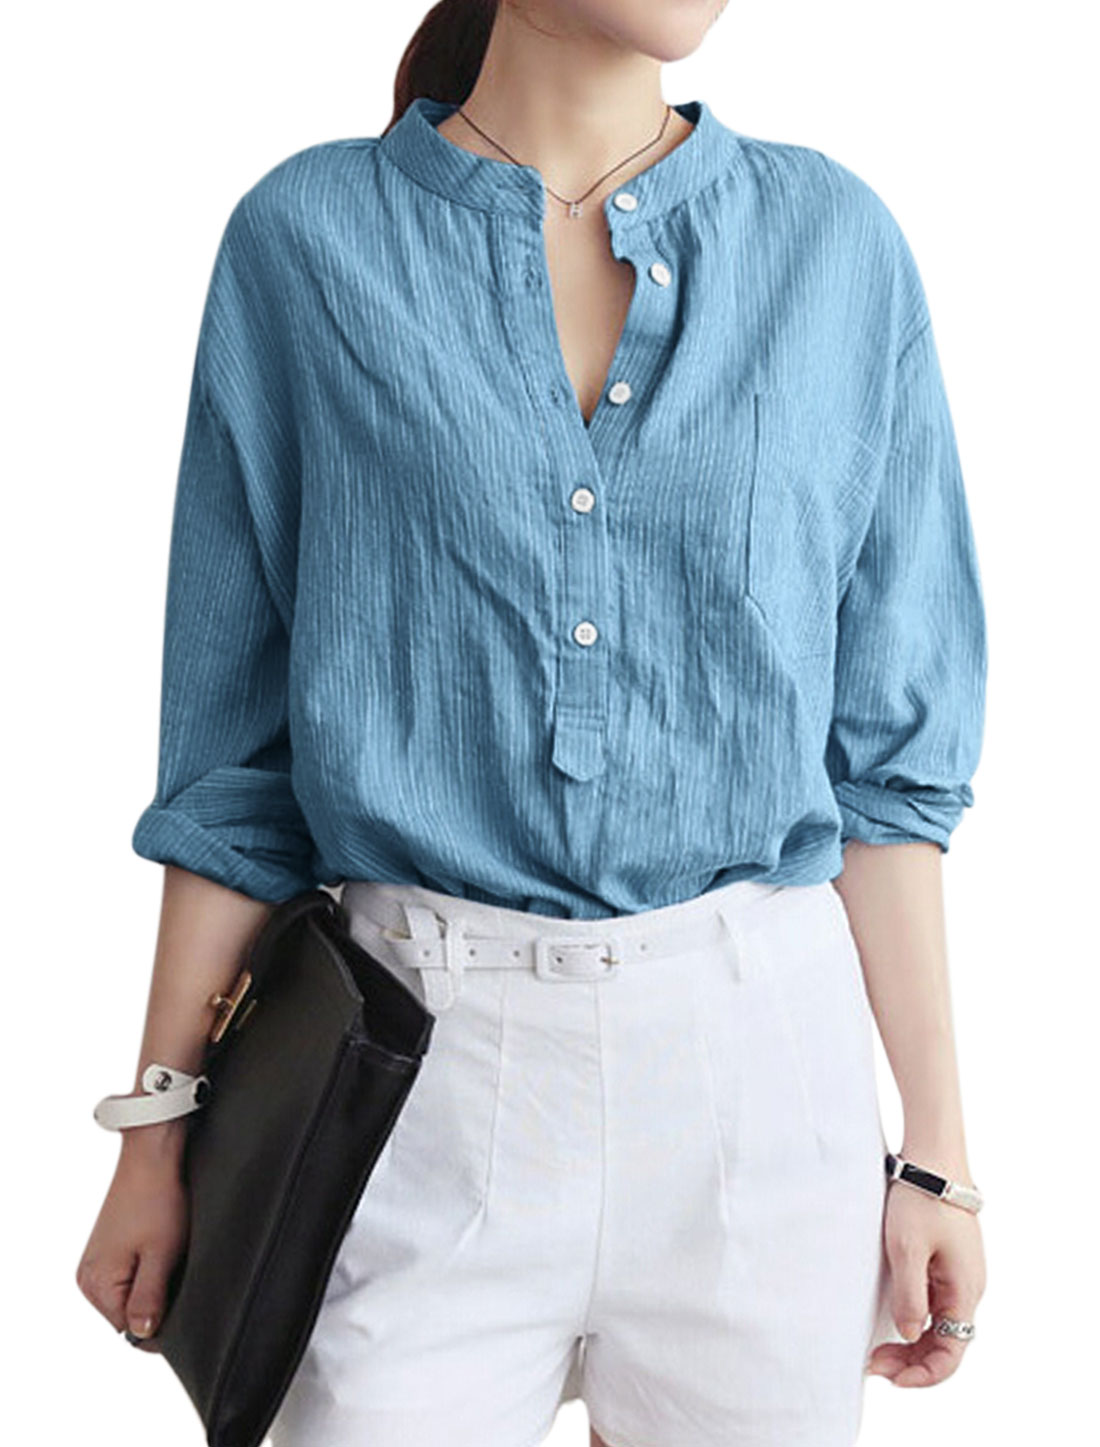 Lady Long Sleeve Half Placket Stripes Pattern Casual Shirt Baby Blue S